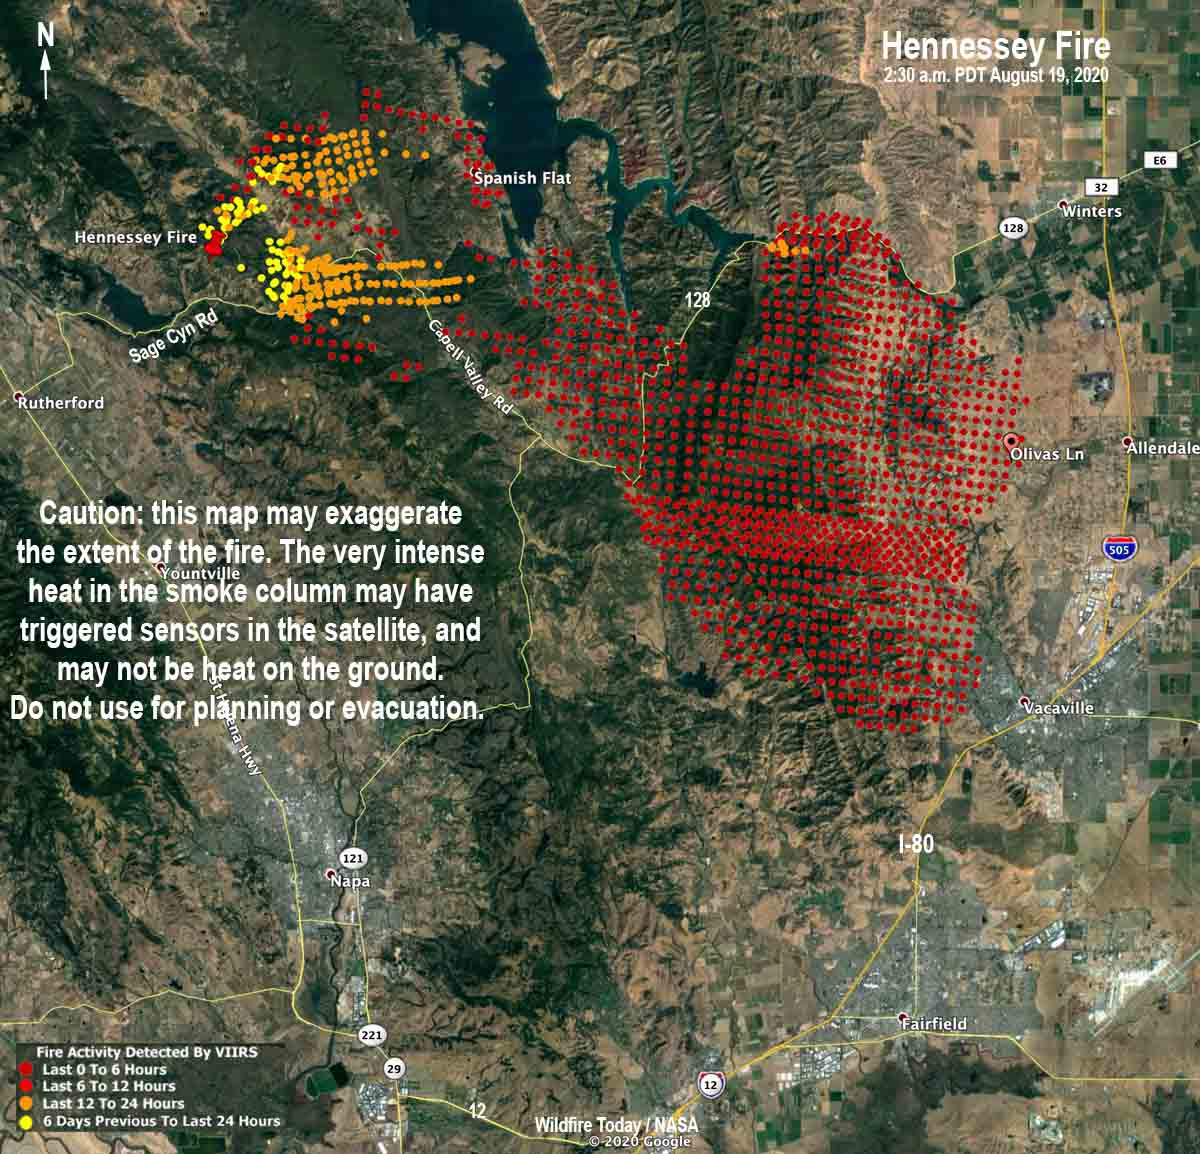 Map of the Hennessey Fire area